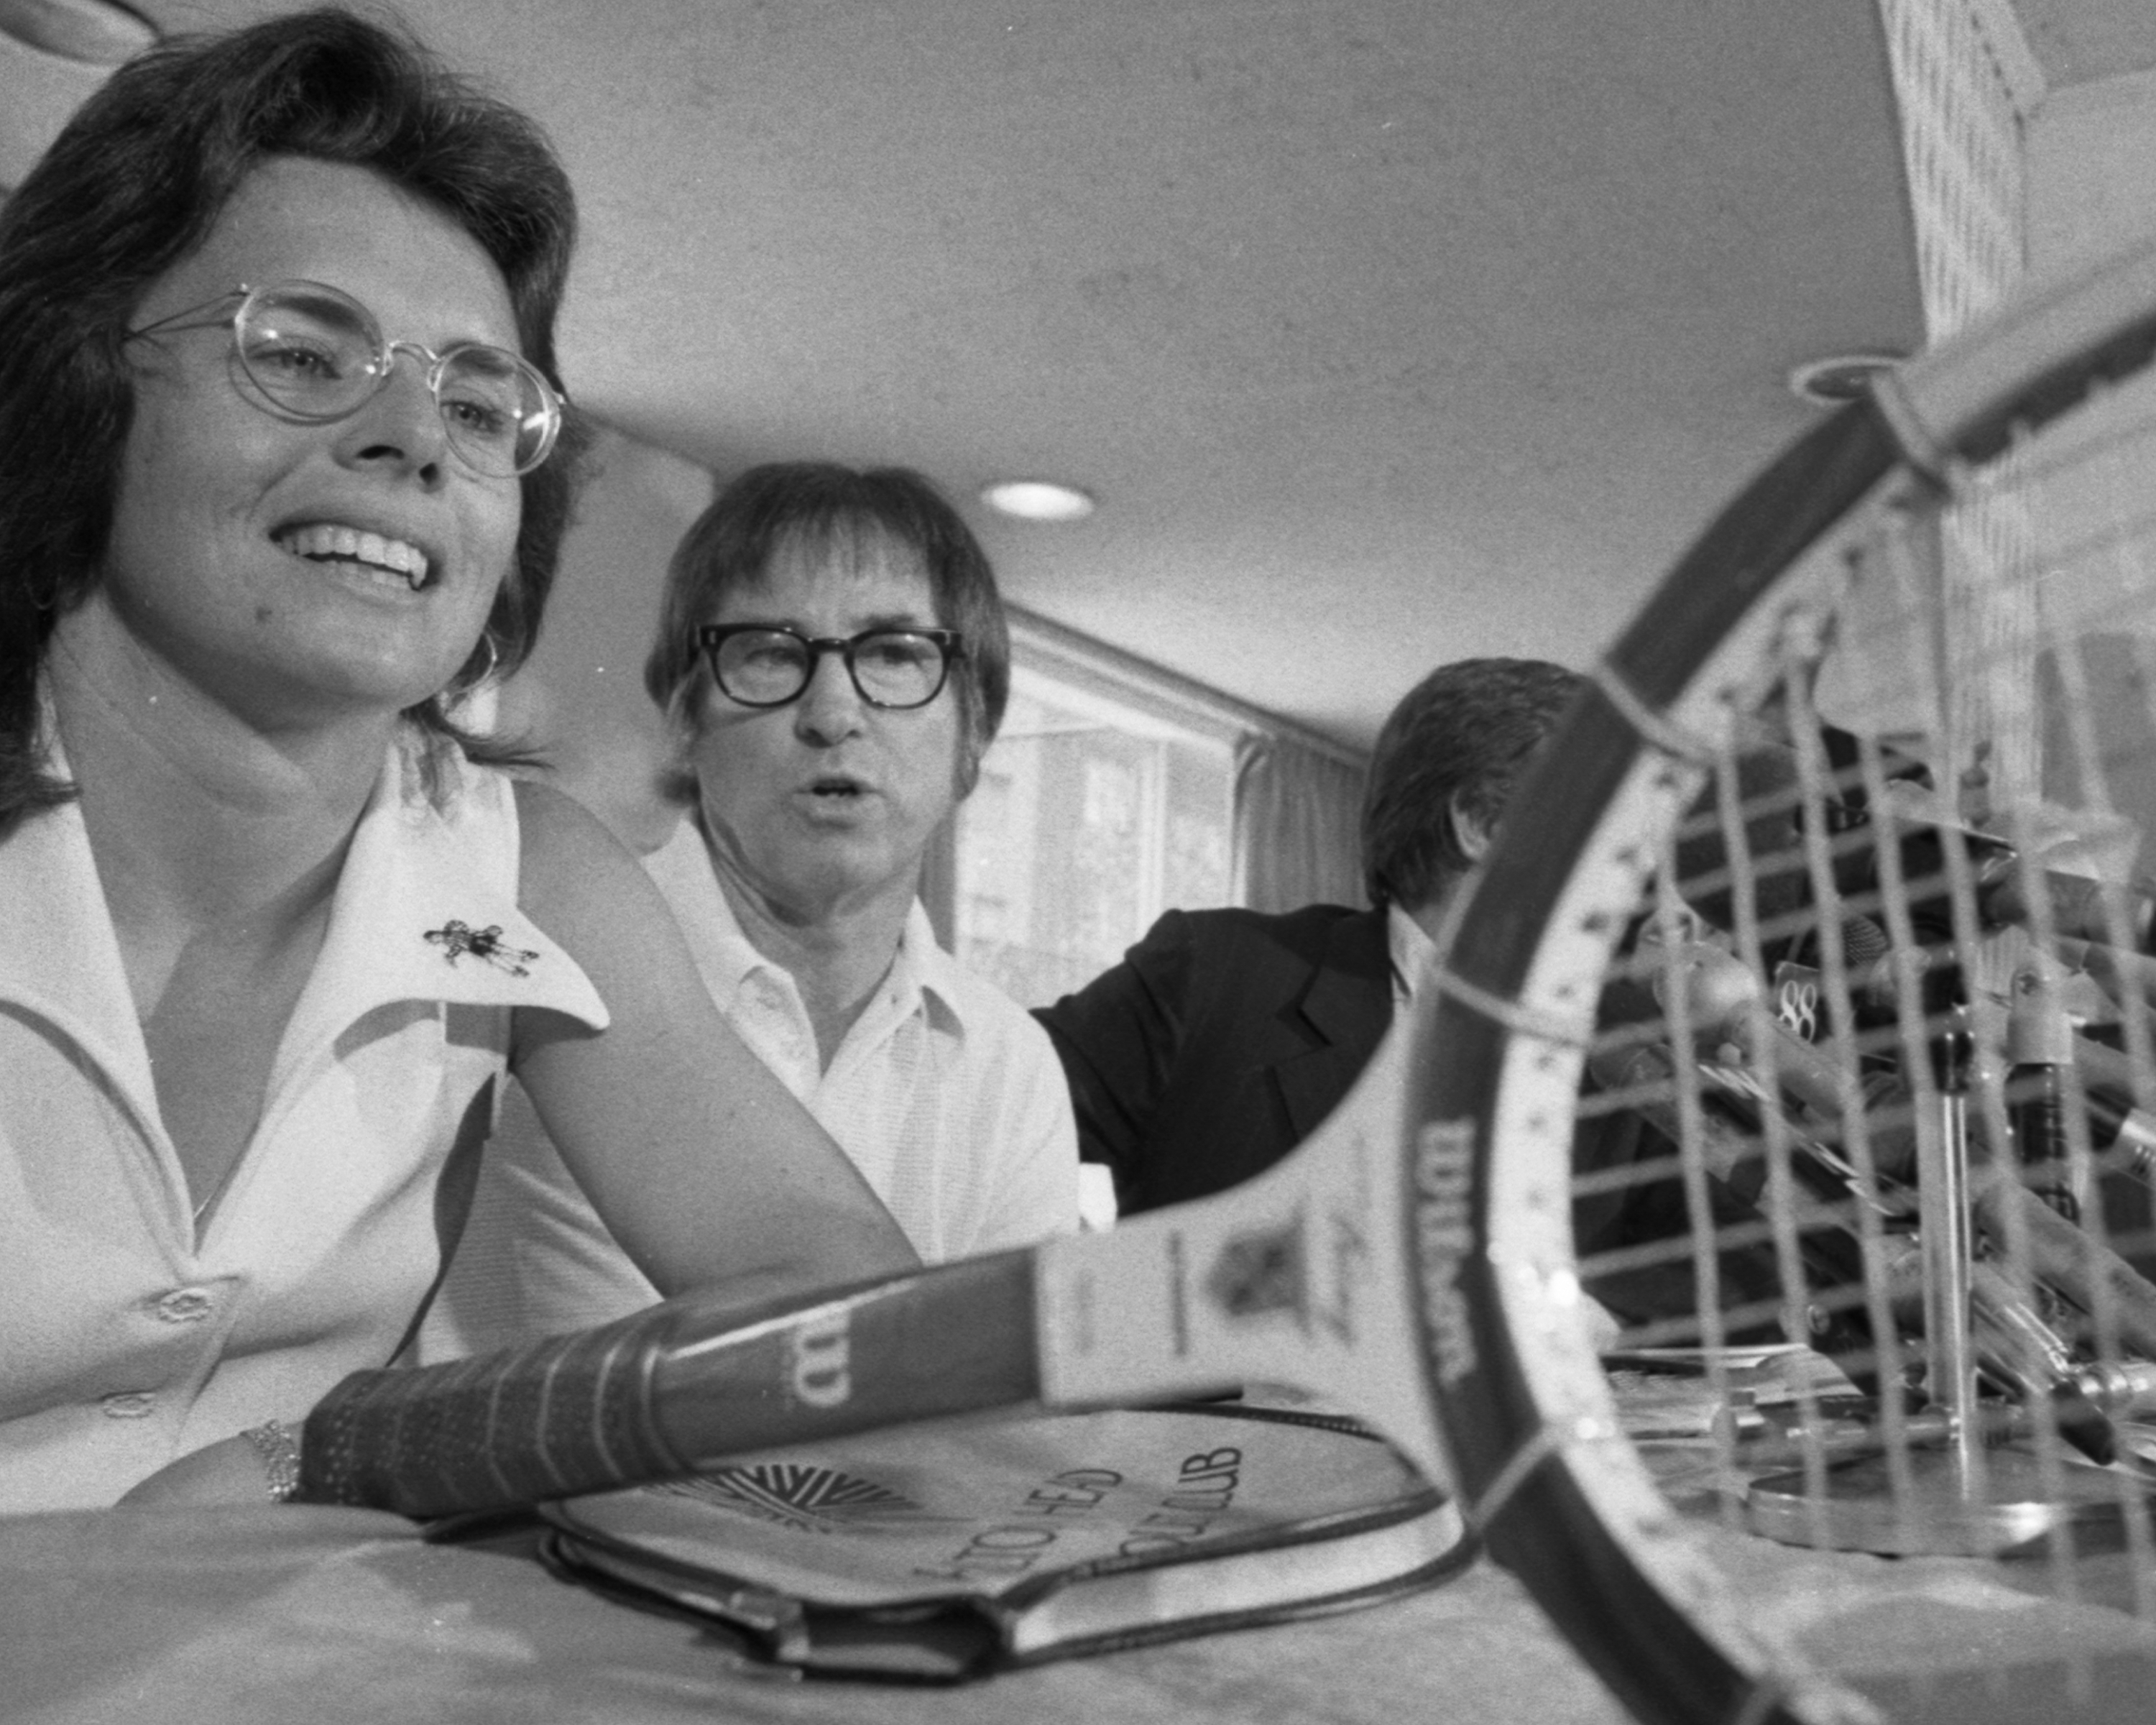 Billie Jean King and Bobby Riggs a few months before their Battle of the Sexes match.